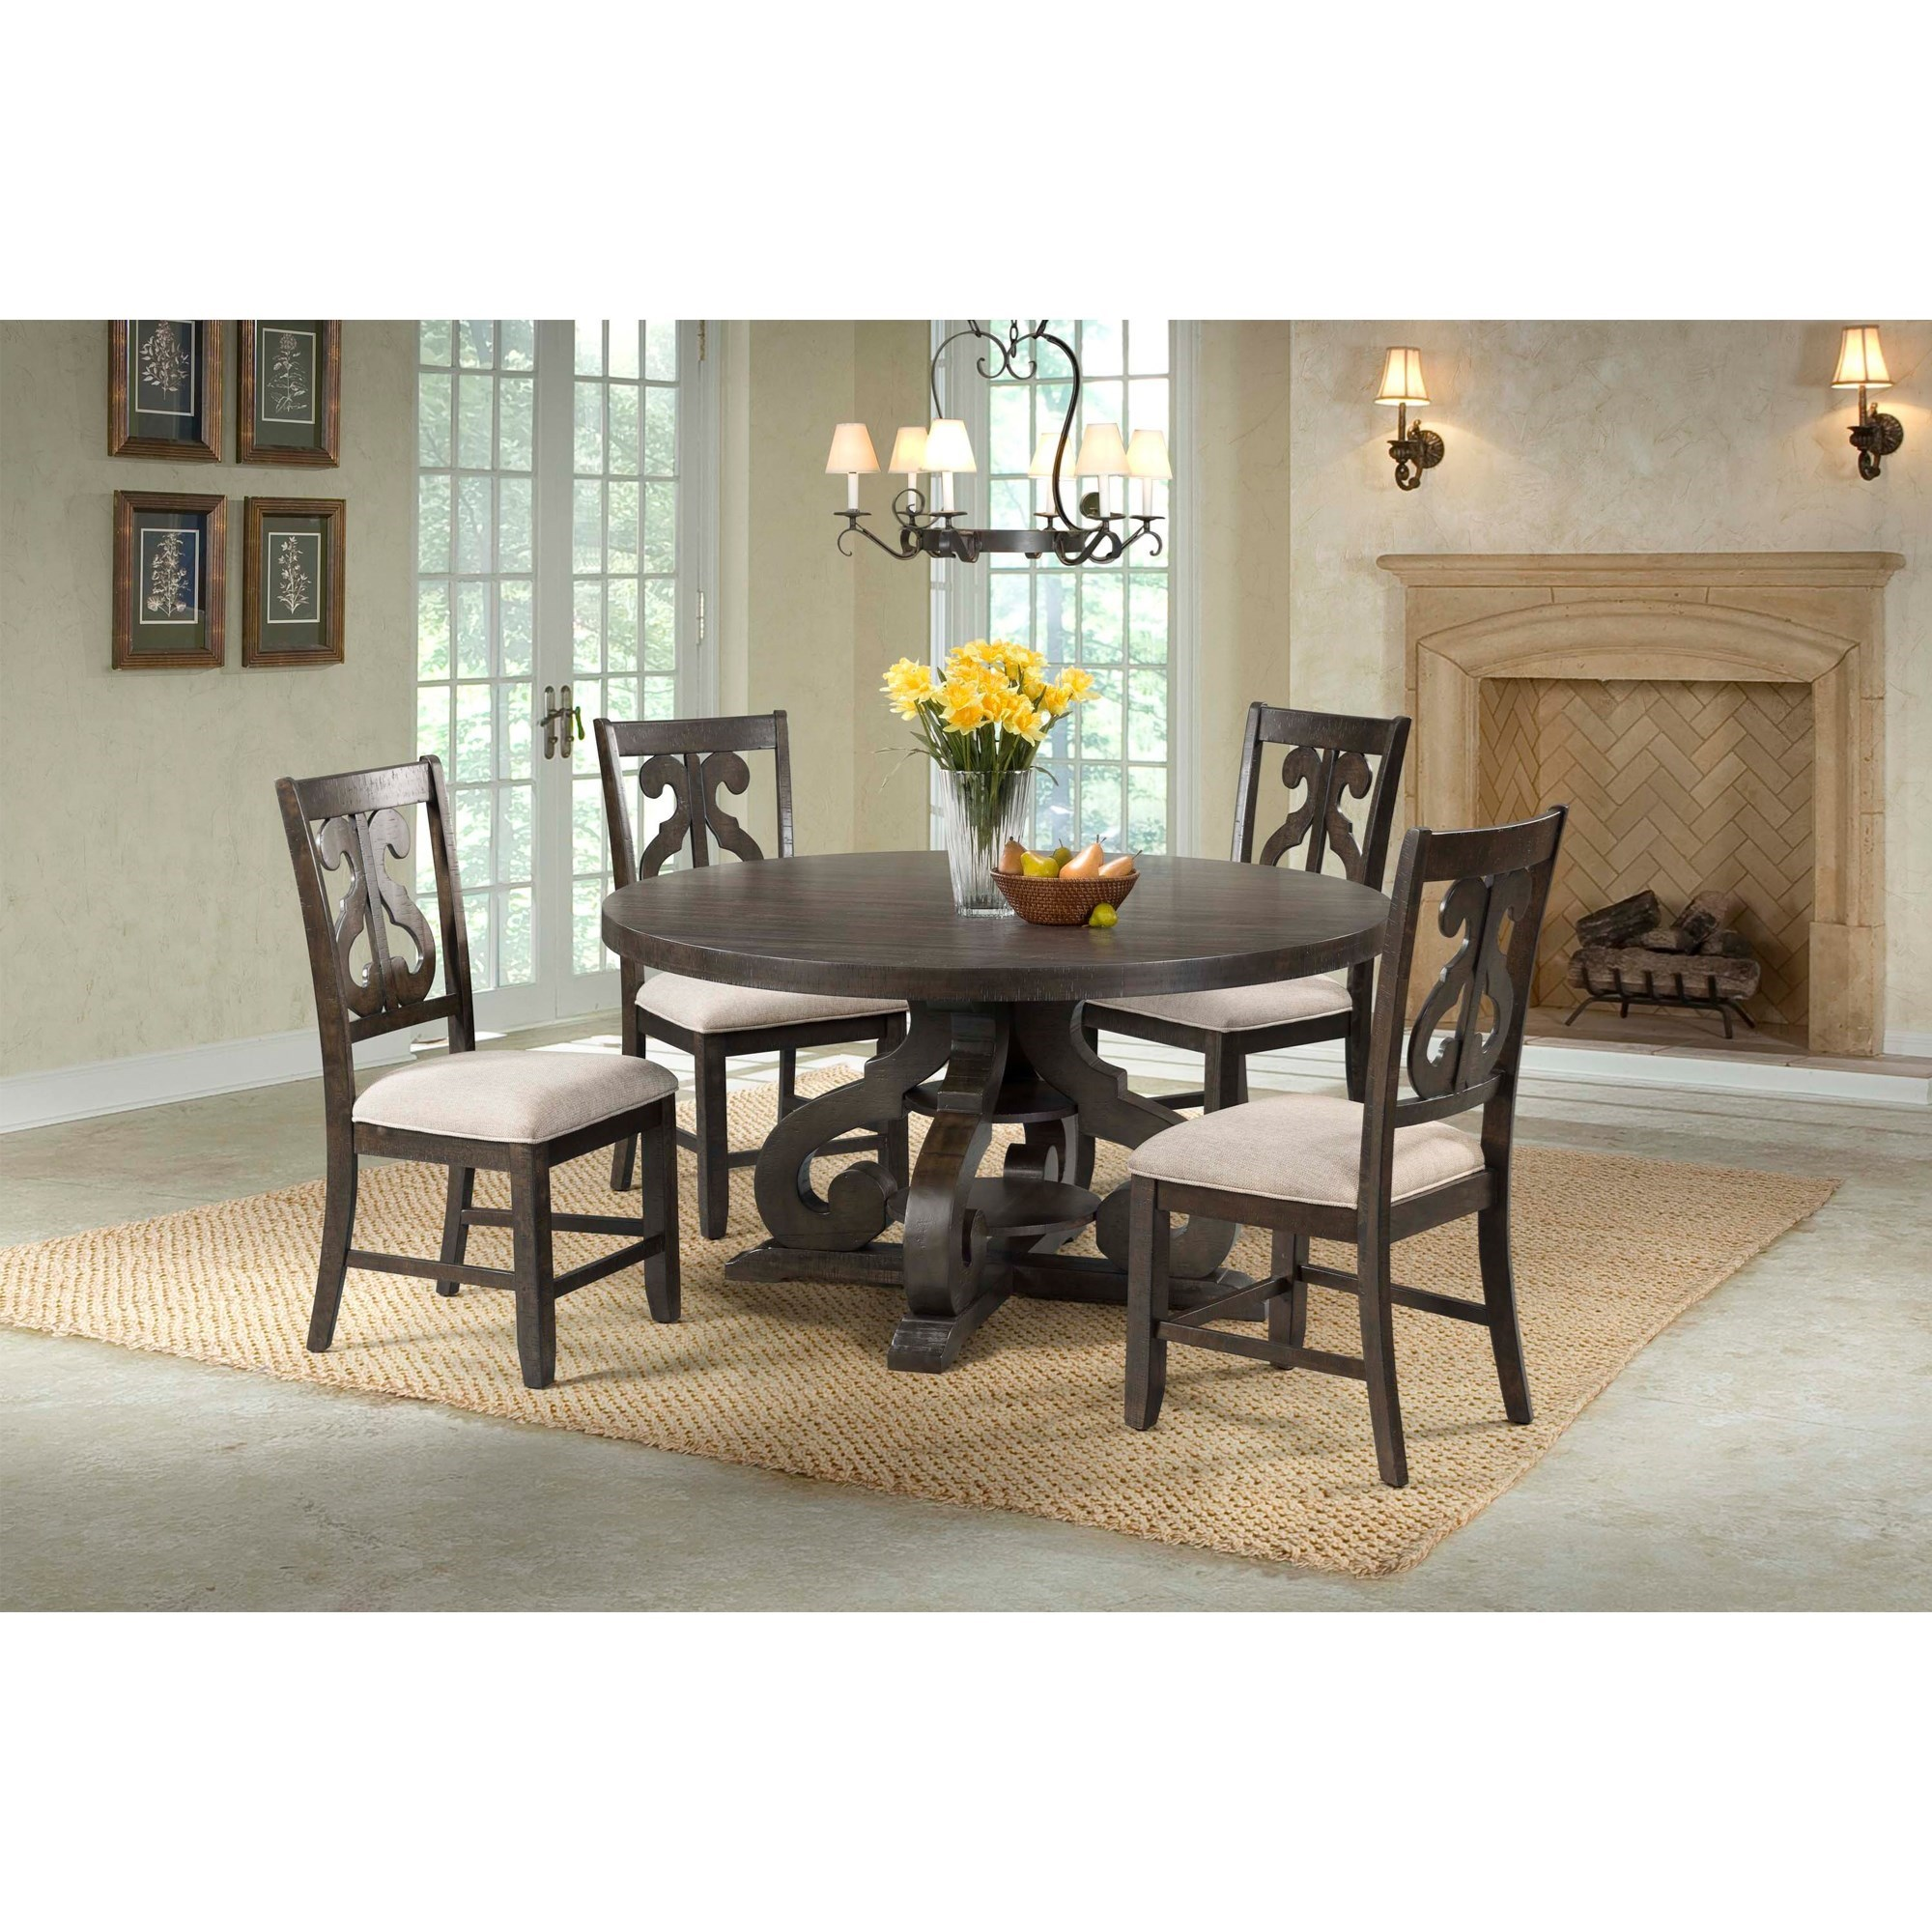 Stone 5-Piece Dining Table and Chair Set by Elements International at Beck's Furniture